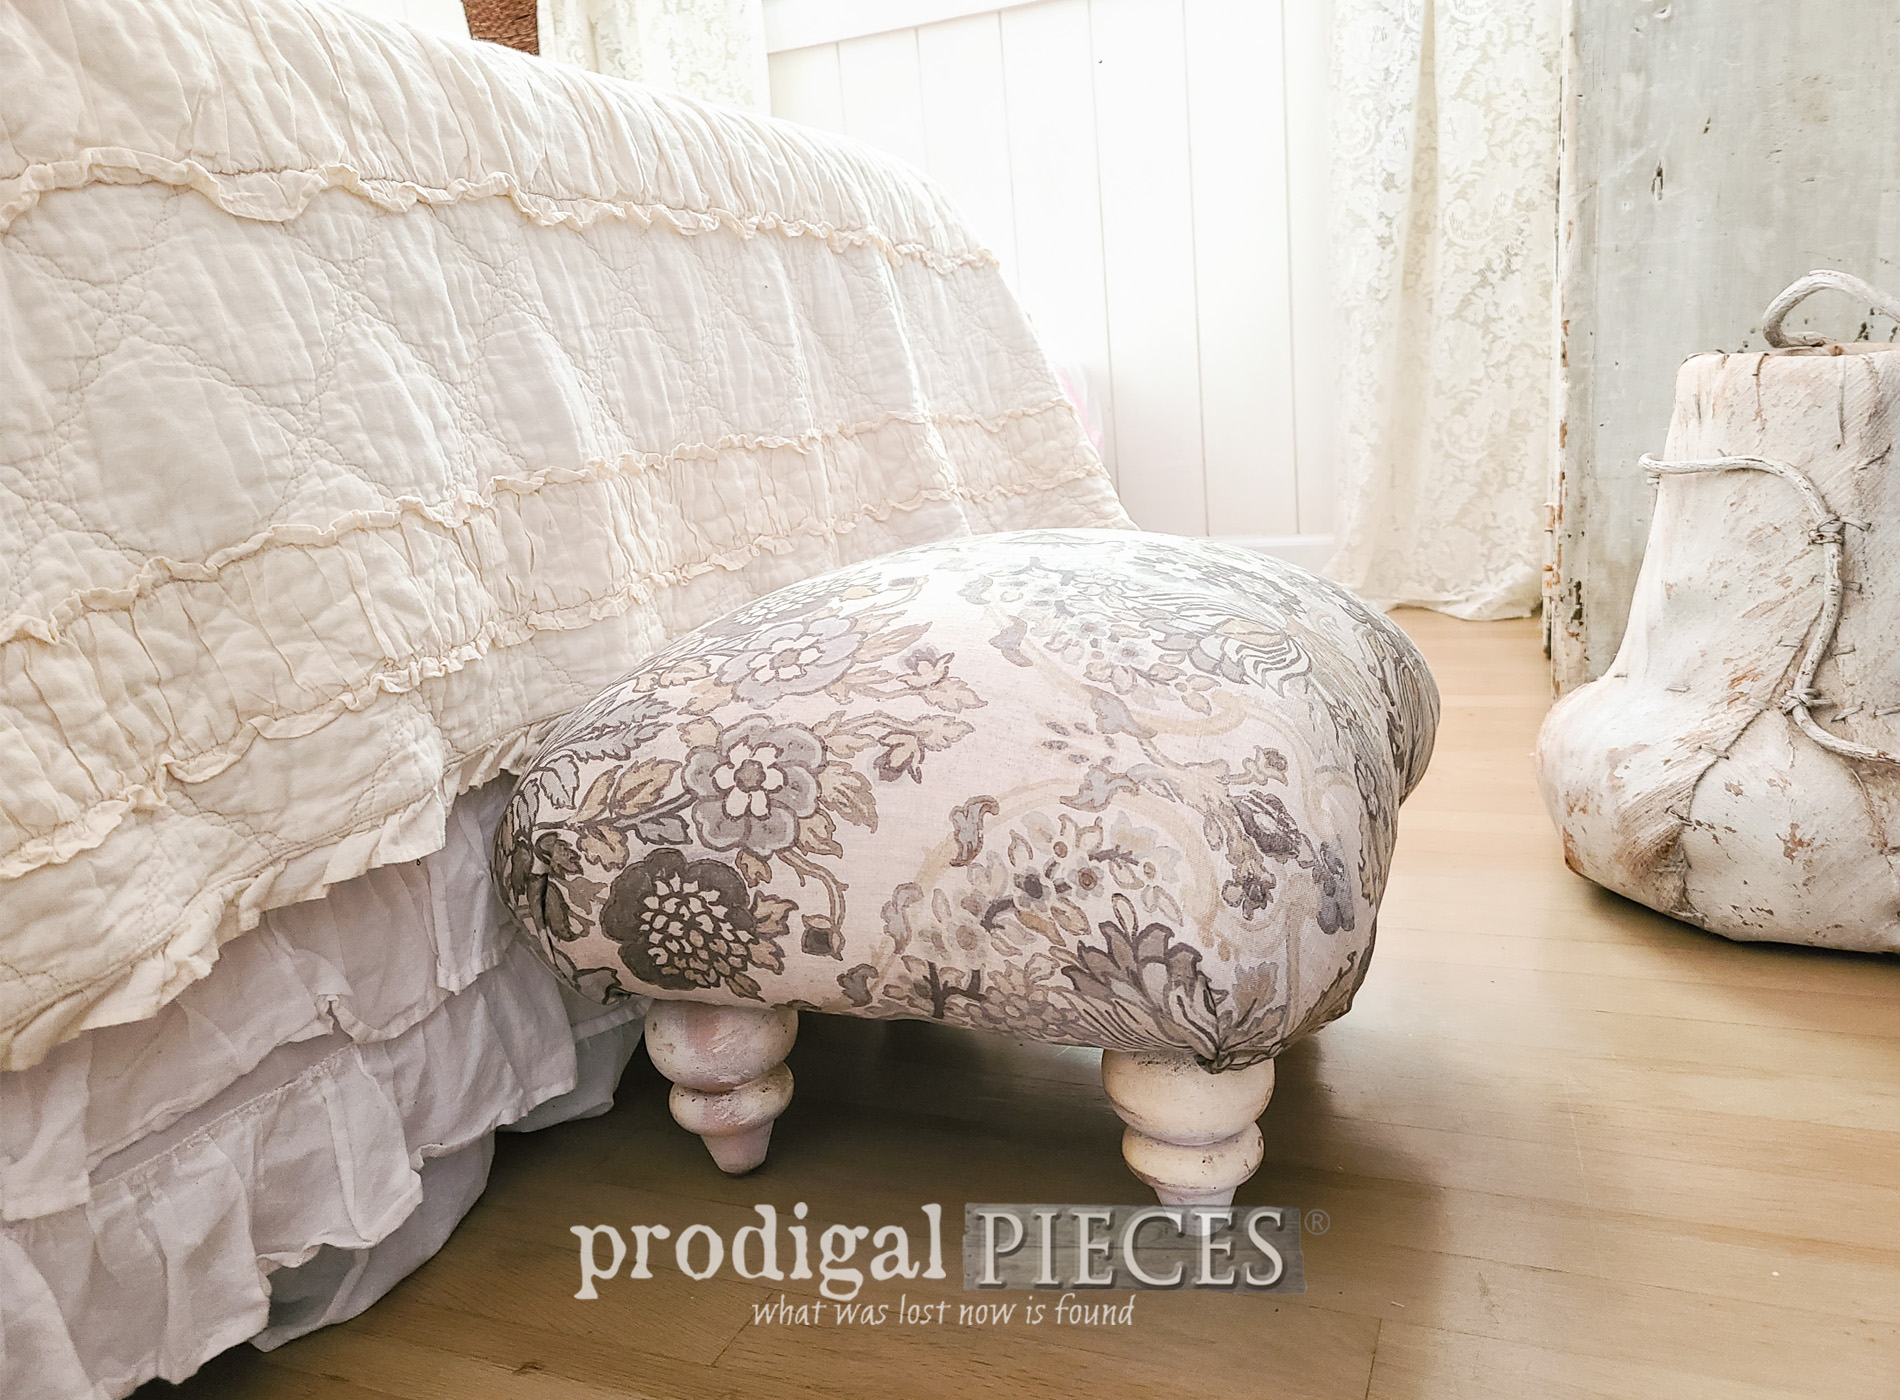 Featured Upcycled Ottoman Handmade with Linen Upholstery by Larissa of Prodigal Pieces | prodigalpieces.com #prodigalpieces #furniture #handmade #diy